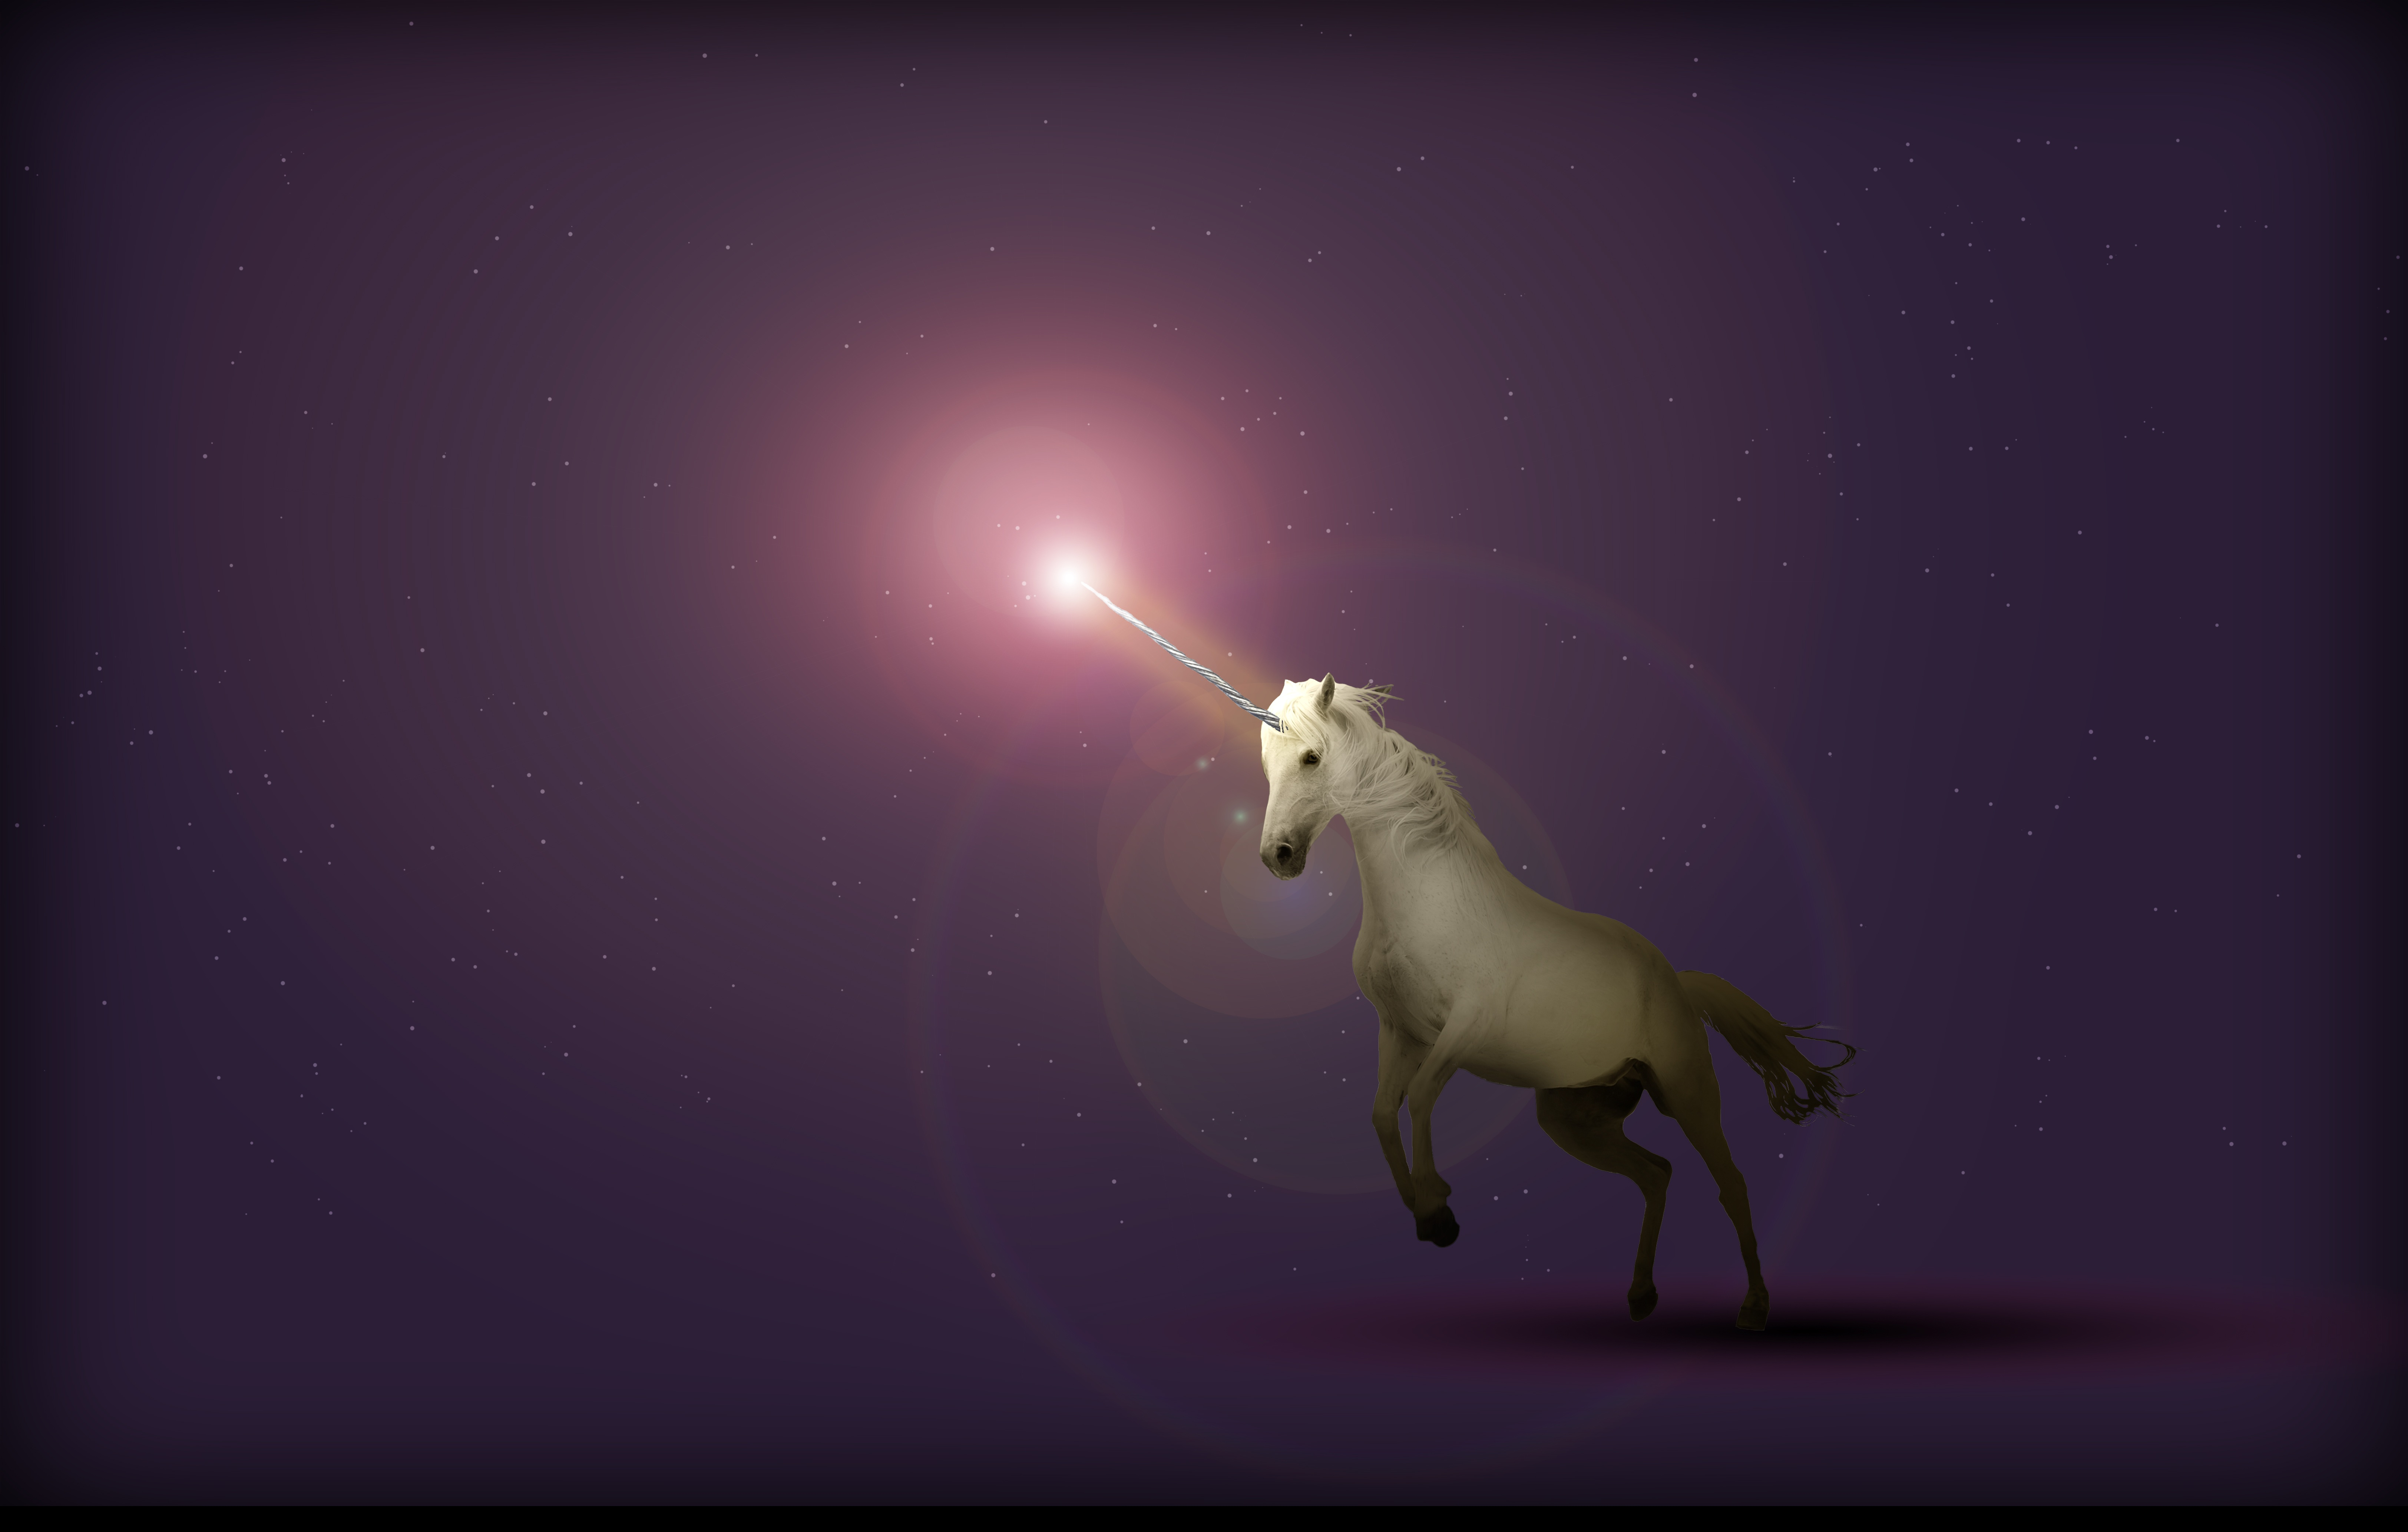 130065 Screensavers and Wallpapers Unicorn for phone. Download Fantasy, Art, Starry Sky, Unicorn pictures for free